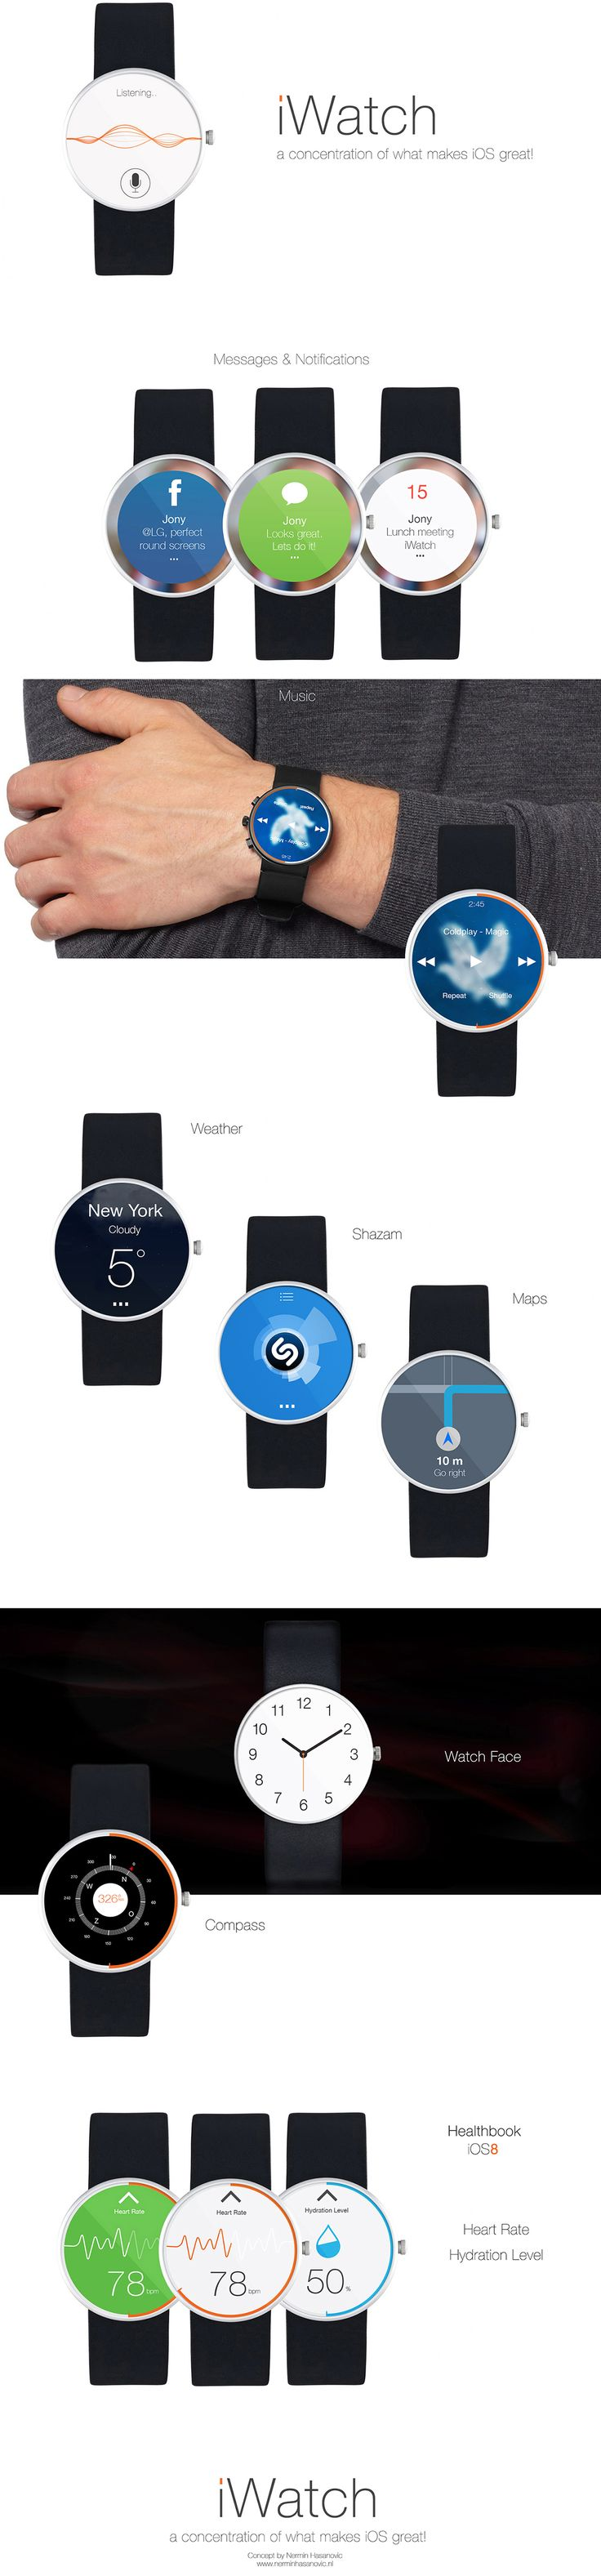 This iWatch concept, the latest in what seems like a daily routine now, comes from Nermin Hasanovic. On top of imagining a companion app for iWatch for the iOS 8 Healthbook app we recently revealed, it also gives us a slick take on Siri, messaging, notifications, and other stock and third-party iOS apps on a round, Android Wear-style display.